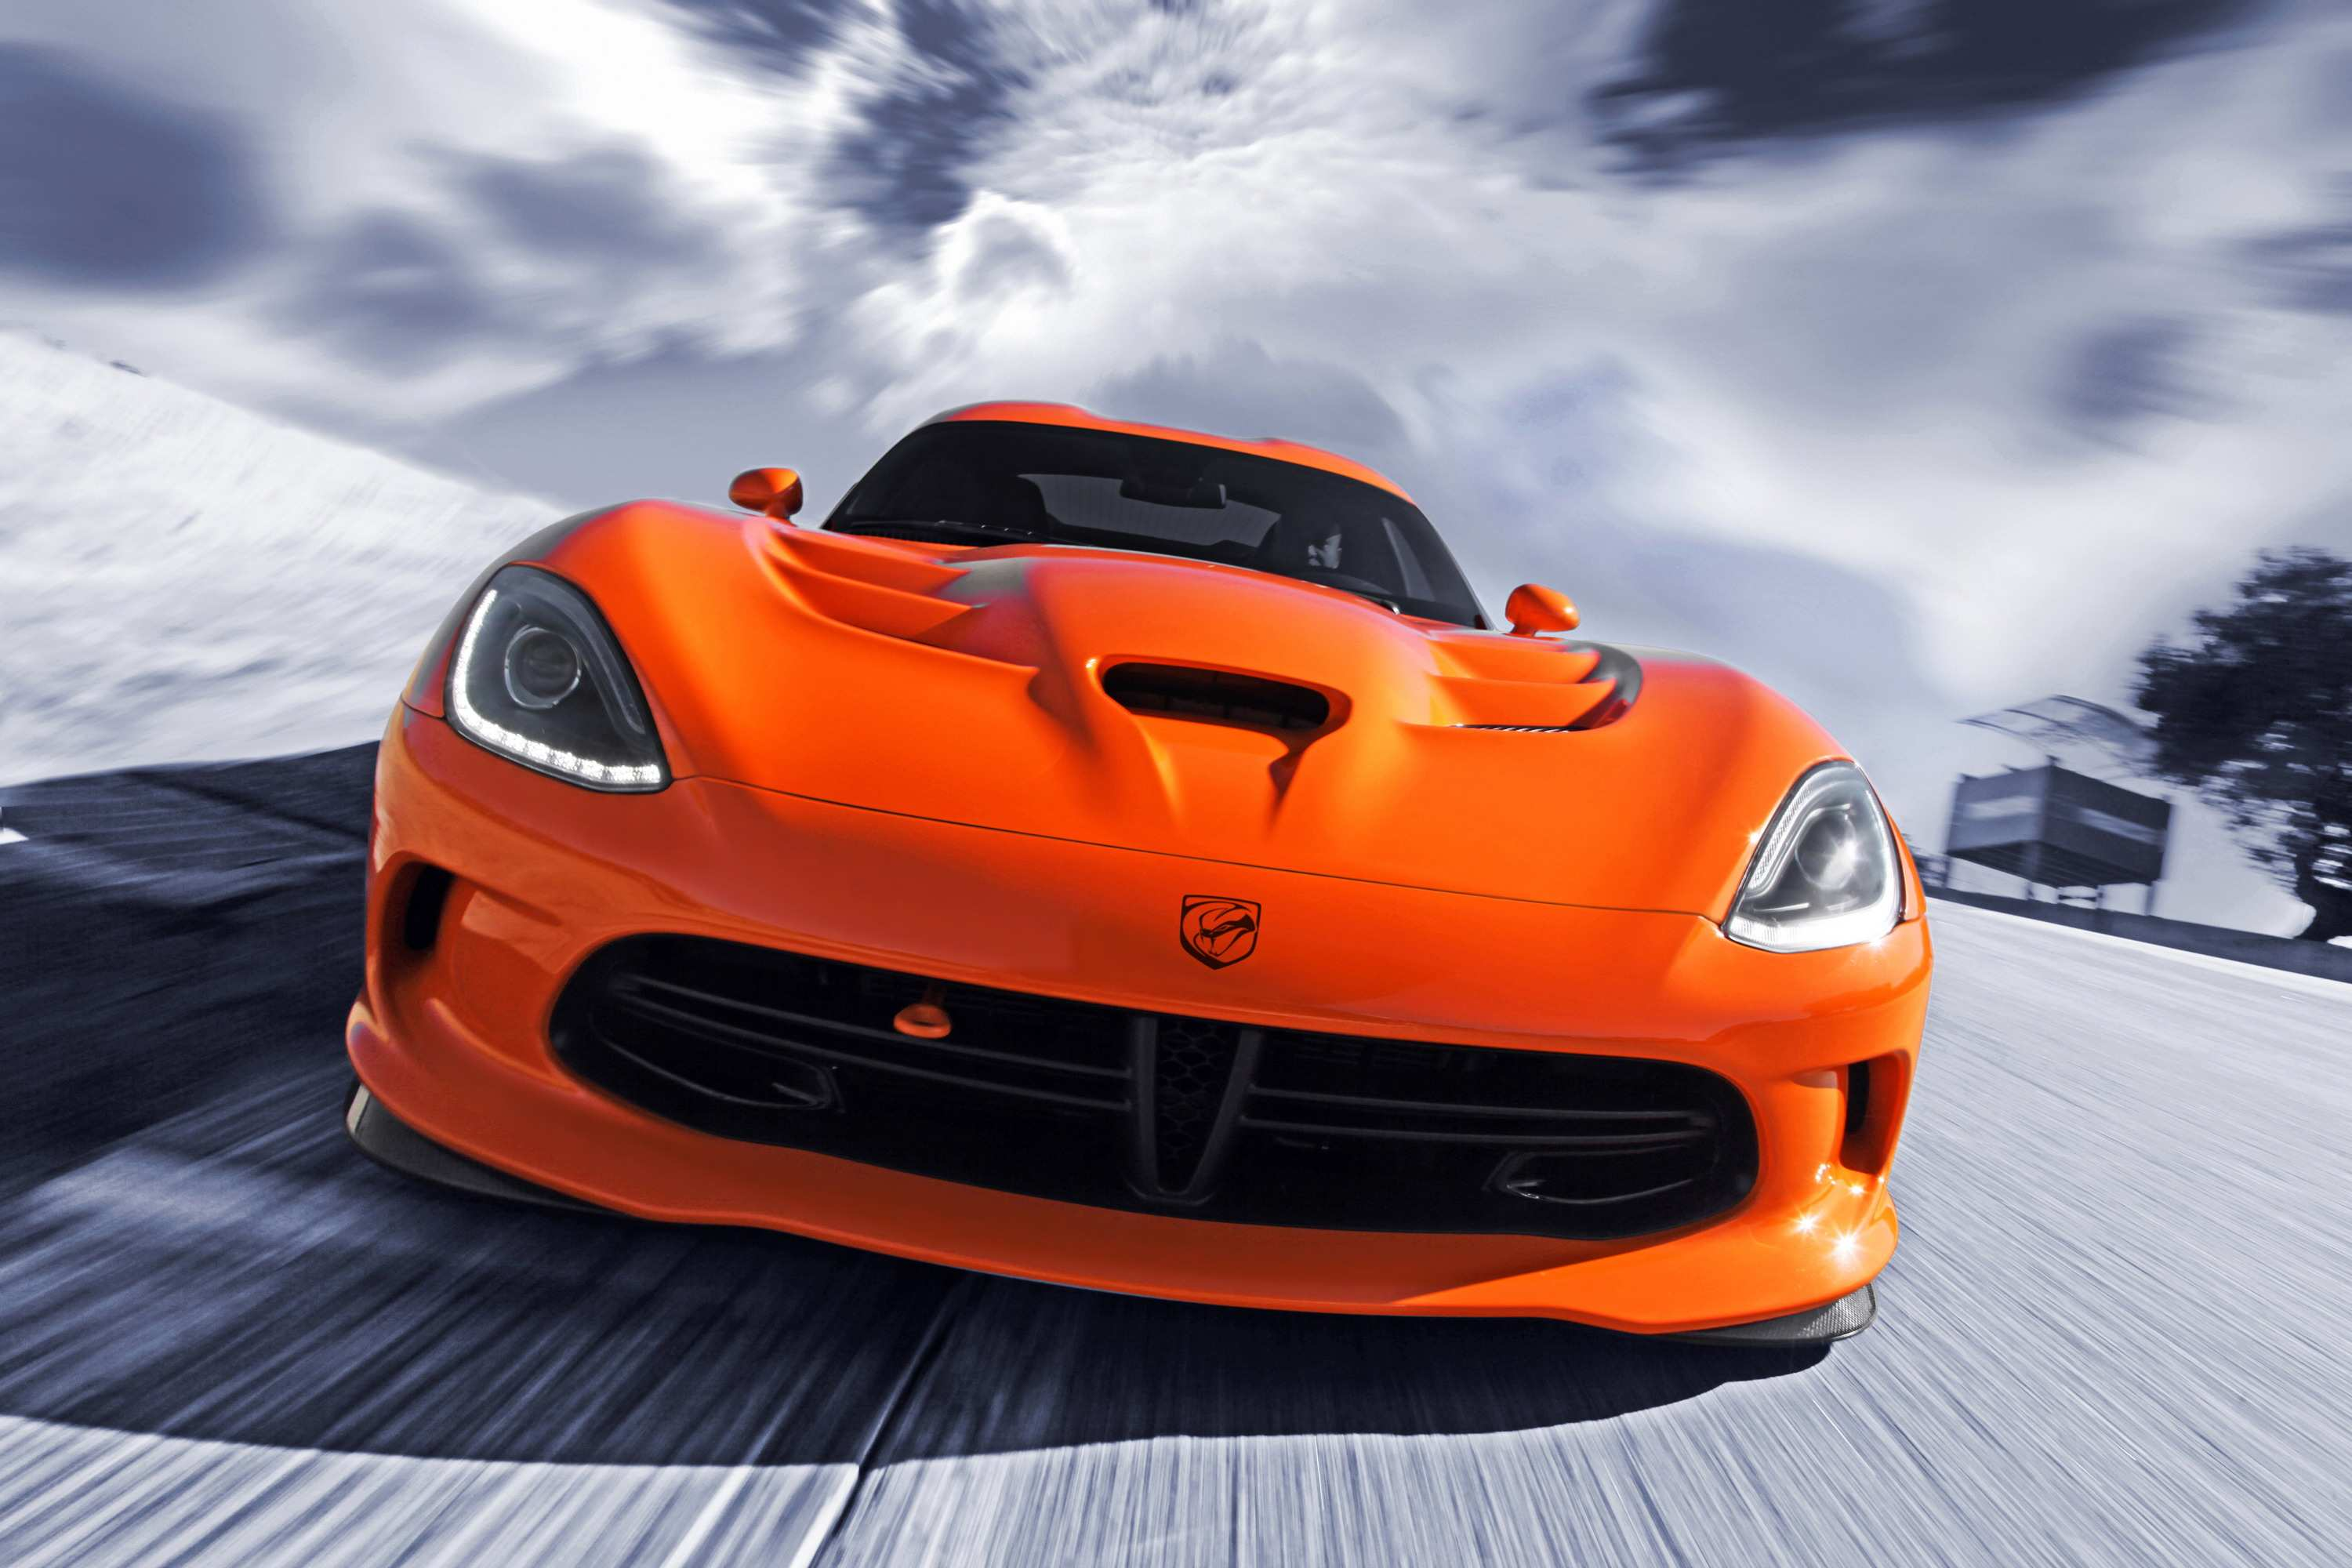 33 New 2020 Dodge Viper Concept Photos